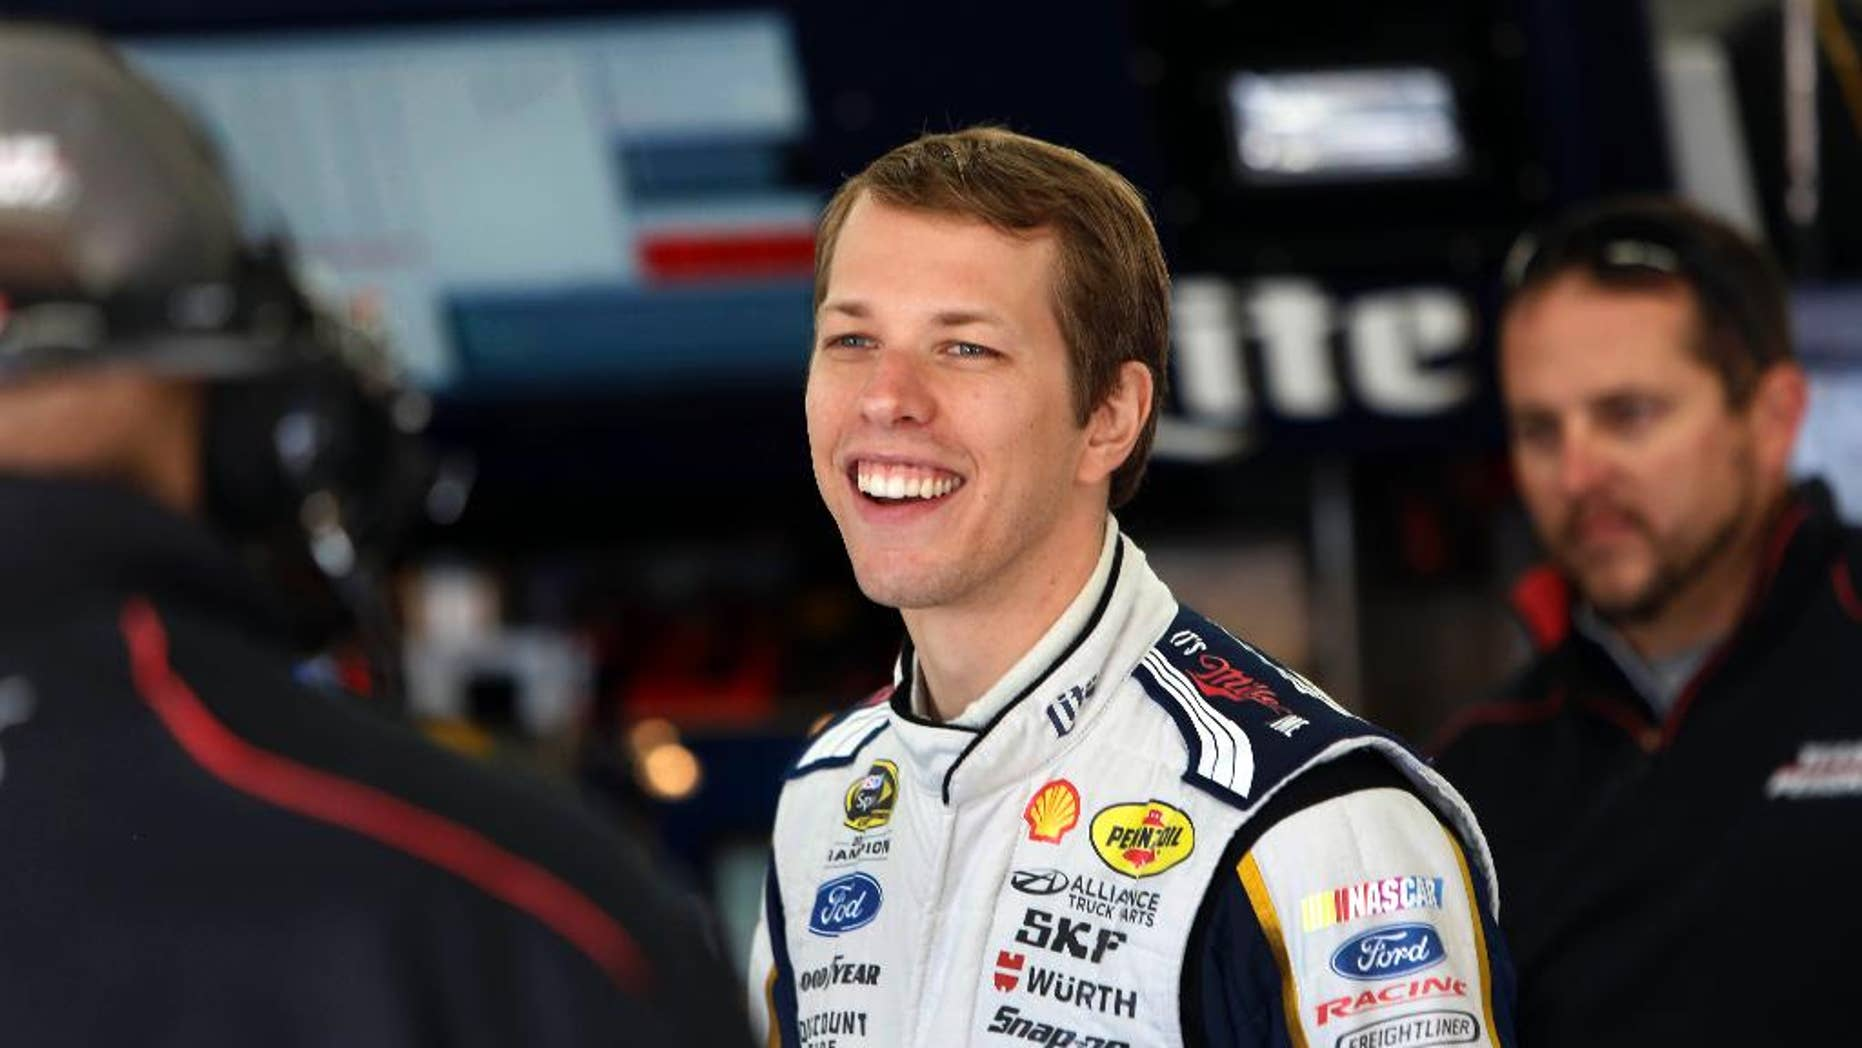 Driver Brad Keselowski talks with his crew during practice for Sunday's NASCAR Sprint Cup Series auto race at New Hampshire Motor Speedway Friday Sept. 19, 2014 in Loudon, N.H. (AP Photo/Jim Cole)